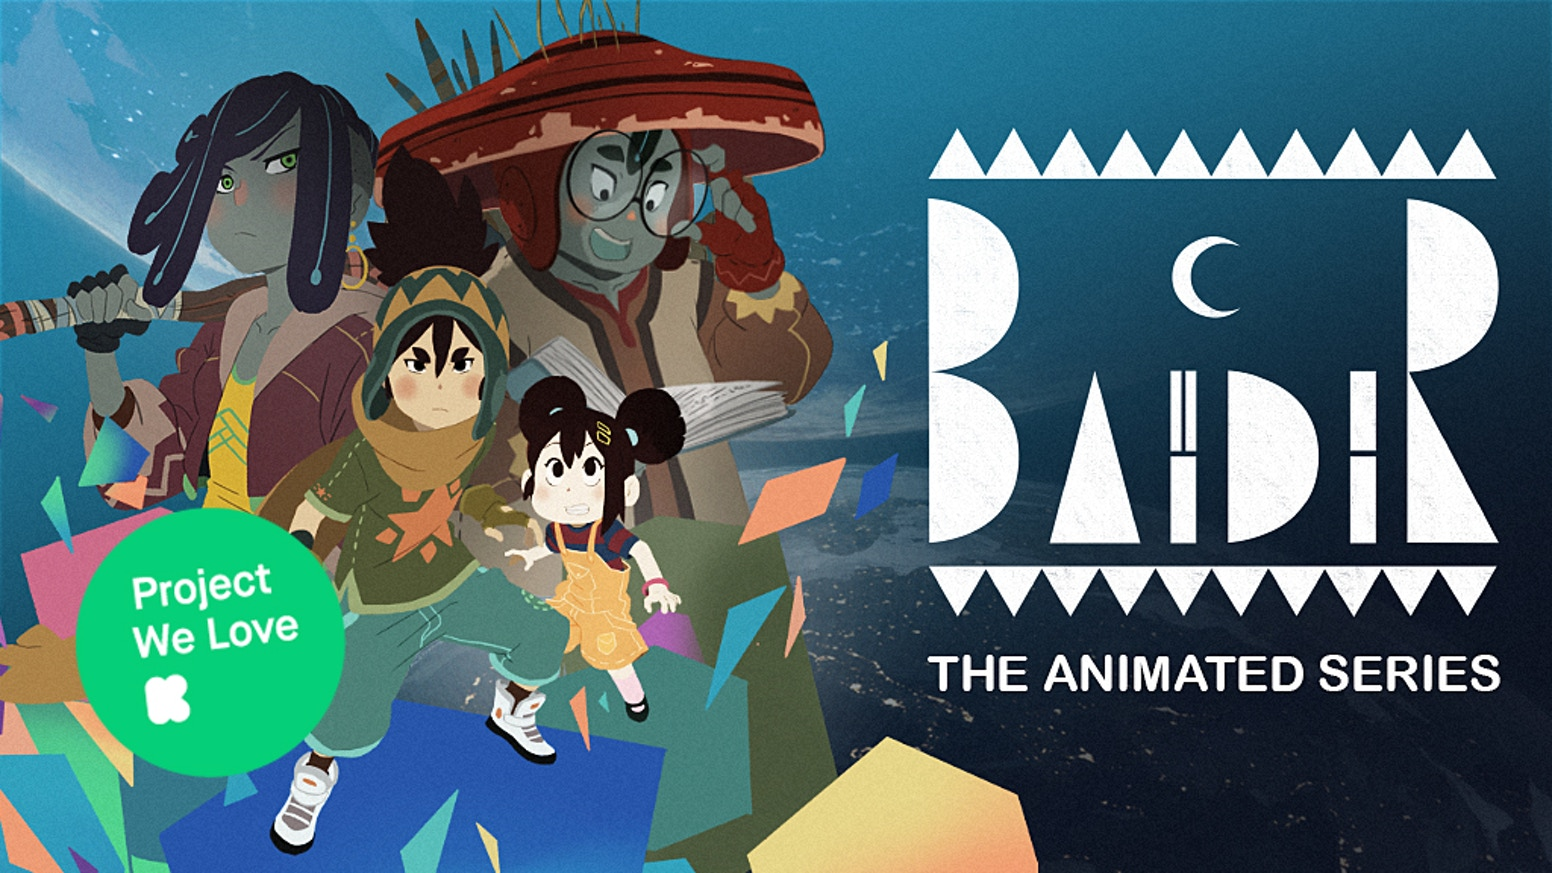 Baïdir is an ecological space-opera animated series.  Our goal here is to produce a kickass new teaser to promote the project.